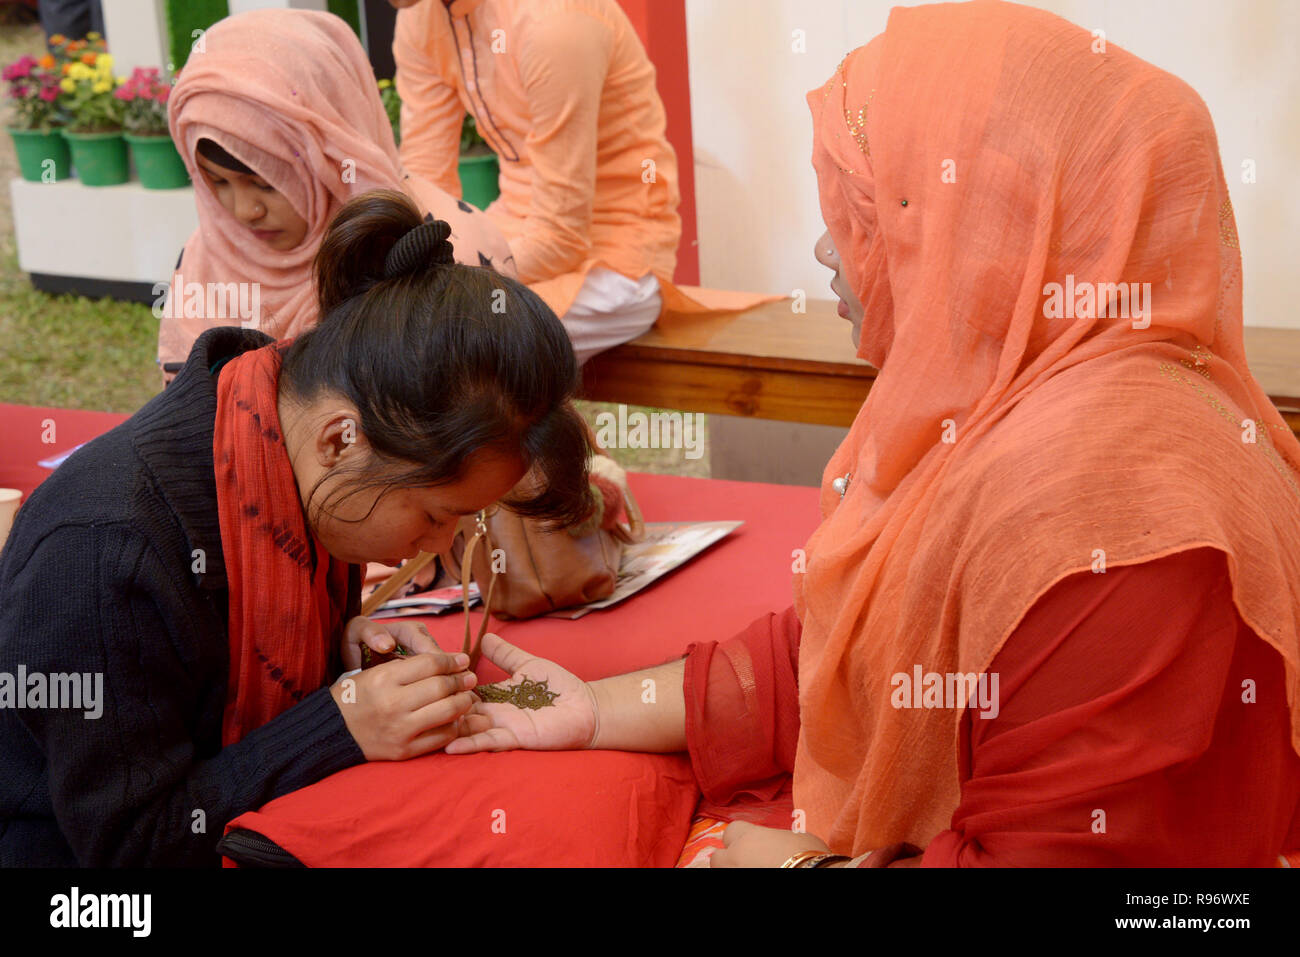 Dhaka. 20th Dec, 2018. A woman gets henna applied on her hand at a wedding fair in Dhaka, capital of Bangladesh, Dec. 20, 2018. In Bangladesh, women always have henna, a traditional India skin art, painted on their hands prior to attending a ceremony. Bangladesh entered the peak season from December to upcoming New Year as people in the country usually hold wedding ceremonies in winter. Credit: Xinhua/Alamy Live News - Stock Image